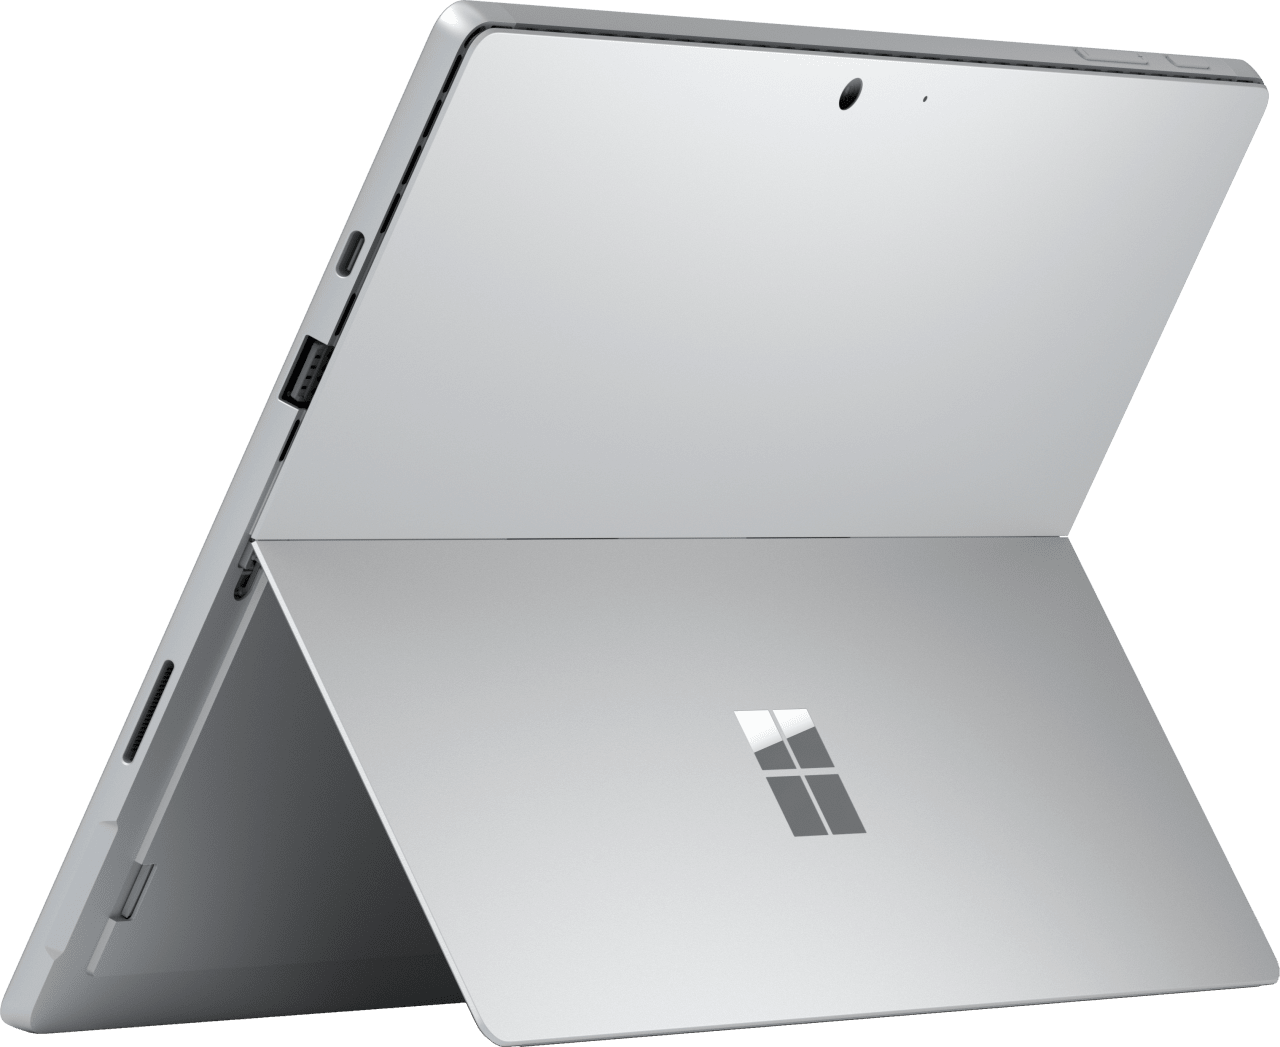 Platinum Microsoft Surface Pro 7 Wi-Fi 128GB.3